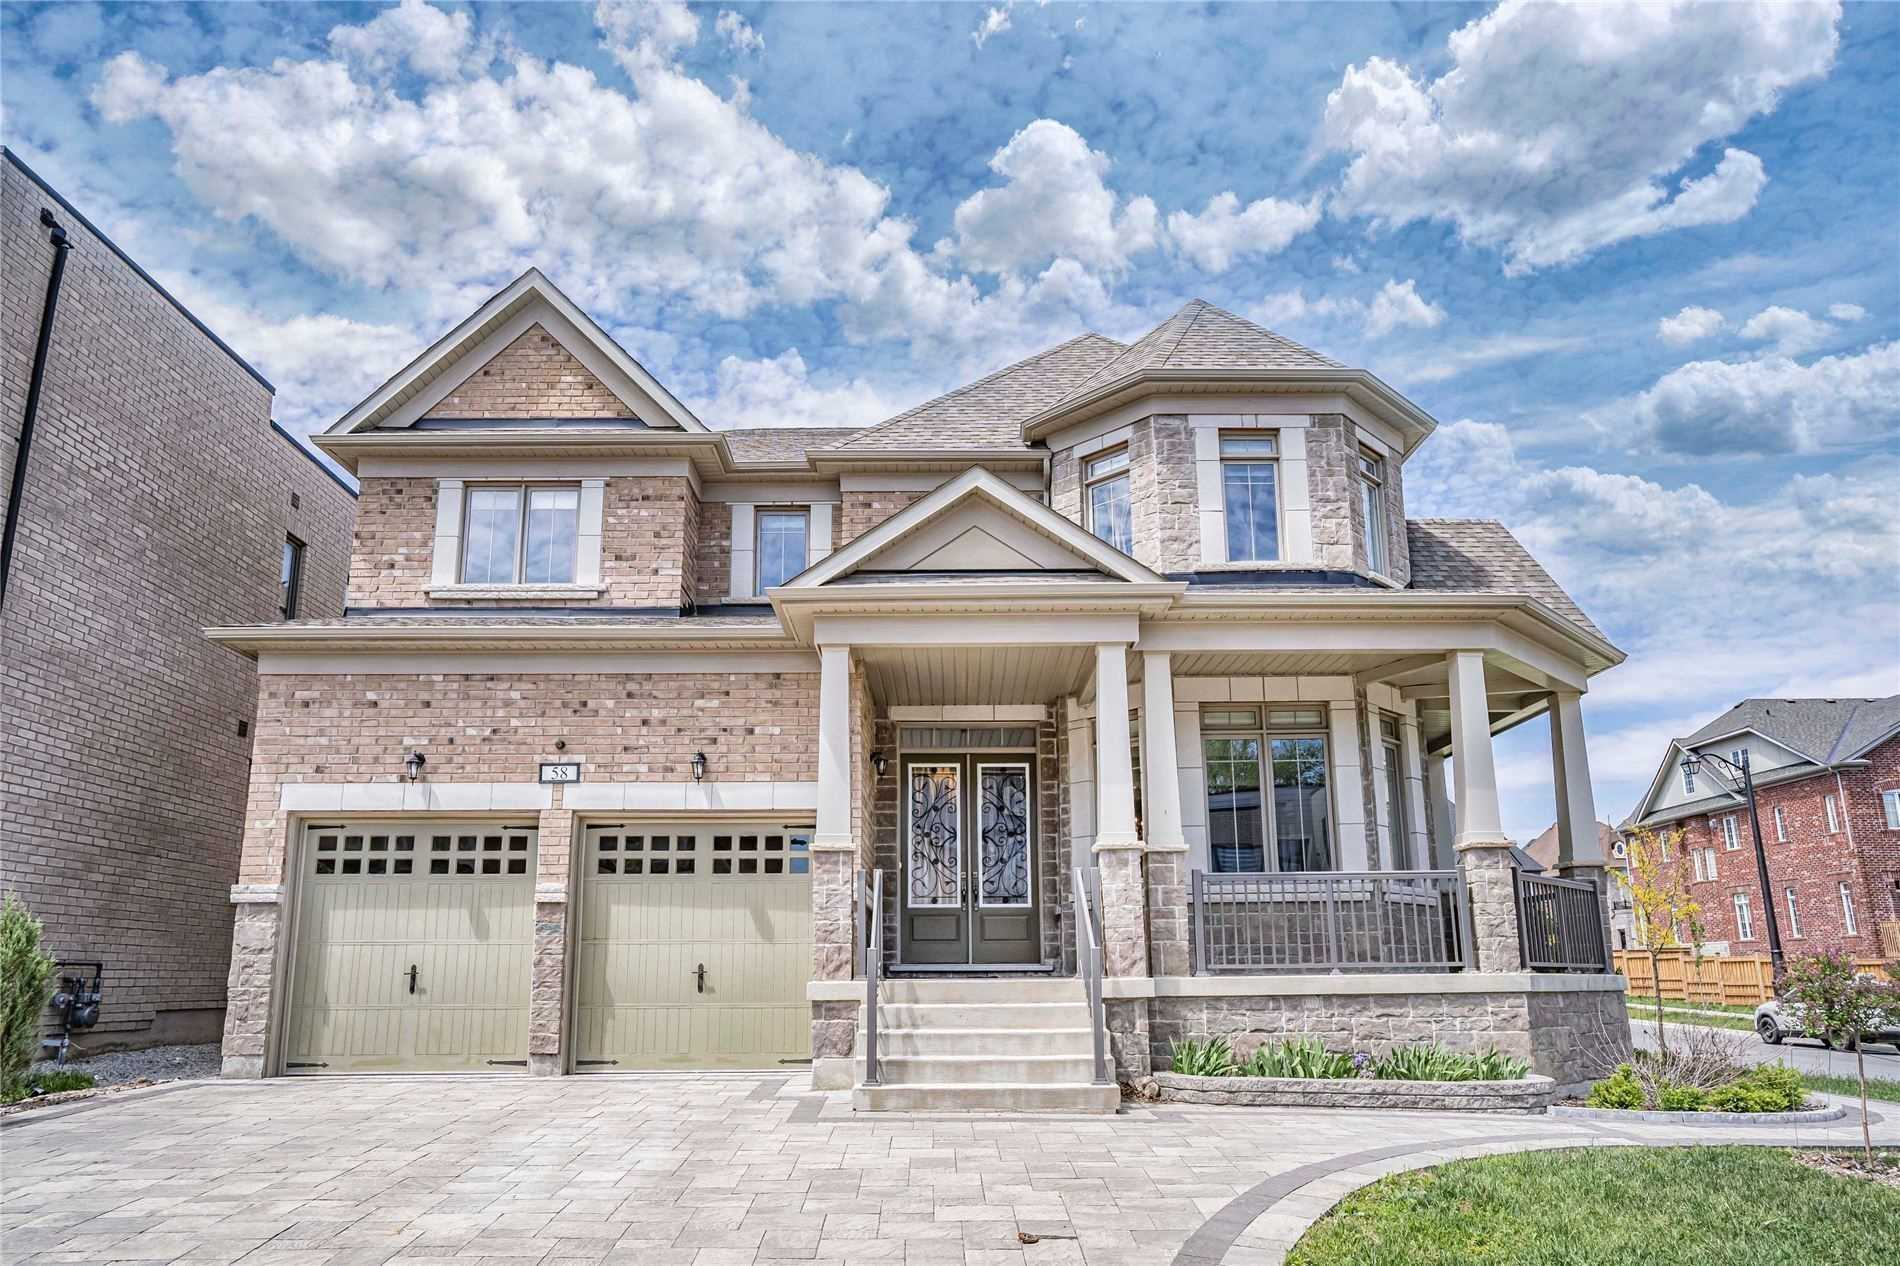 58 Fitzmaurice Dr, Vaughan, Ontario L6A4X7, 5 Bedrooms Bedrooms, 10 Rooms Rooms,4 BathroomsBathrooms,Detached,For Sale,Fitzmaurice,N4853714